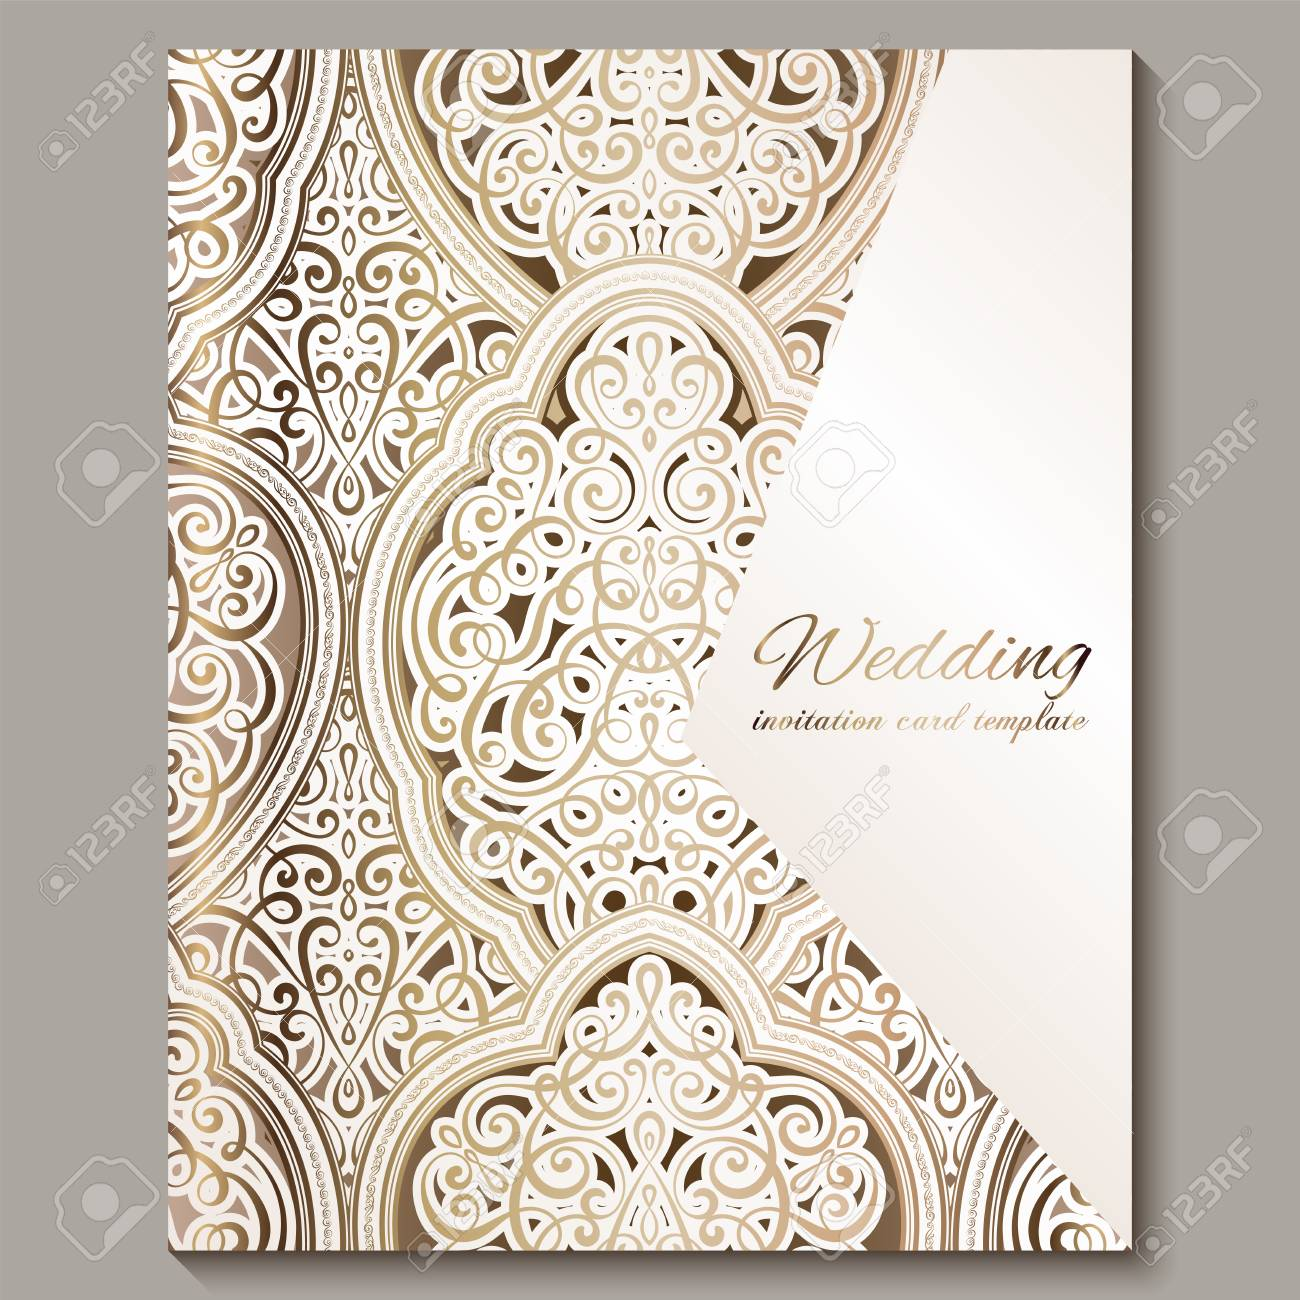 Wedding Invitation Card With Gold Shiny Eastern And Baroque Rich Foliage Ornate Islamic Background For Your Design Islam Arabic Indian Dubai